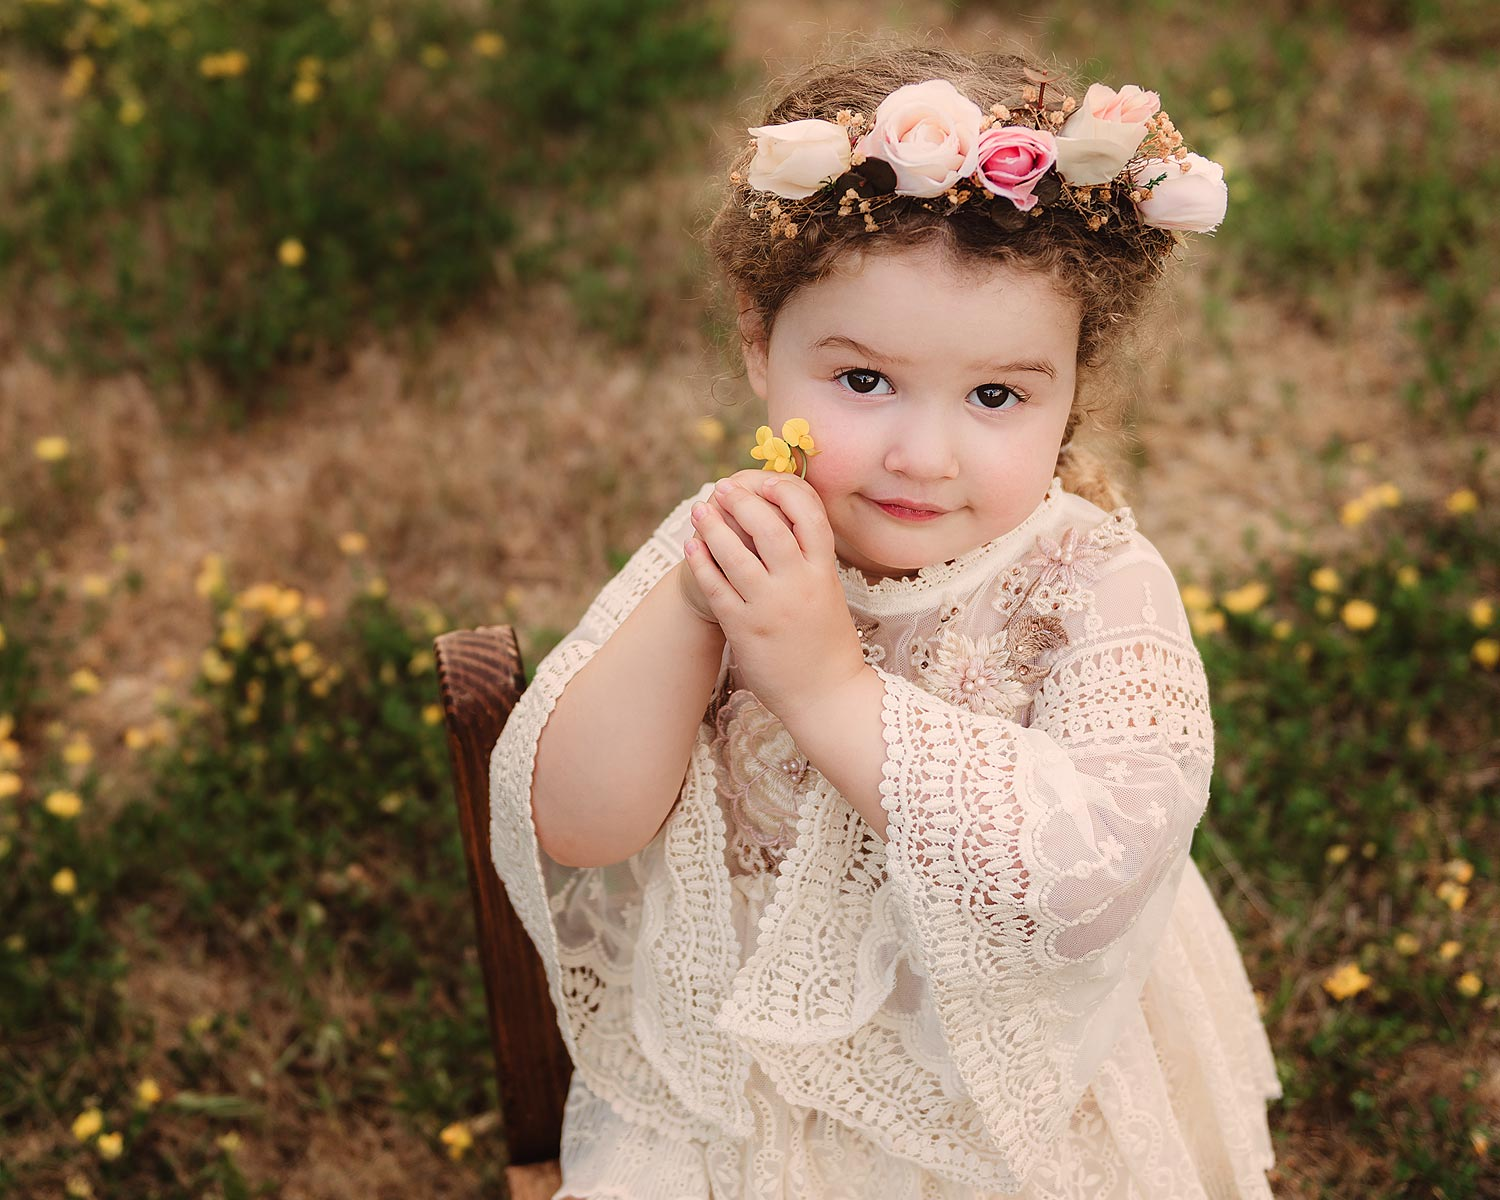 Toddler Milestone session with boho cream dress